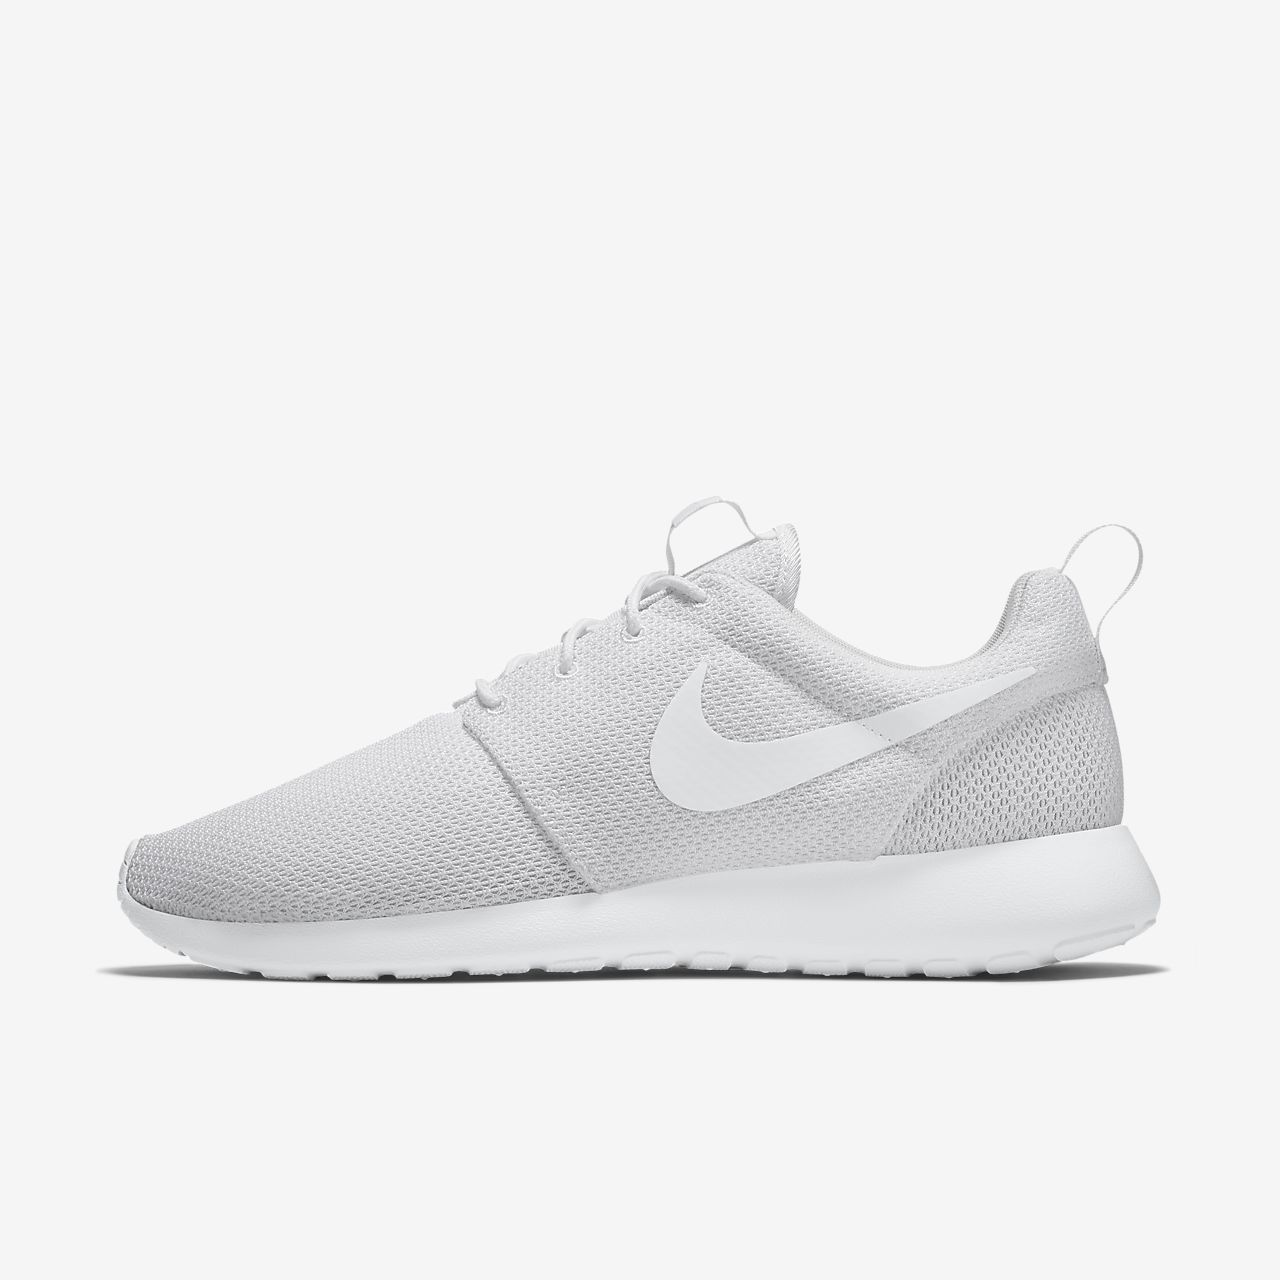 725363fd3a7a Nike Roshe One Men s Shoe. Nike.com